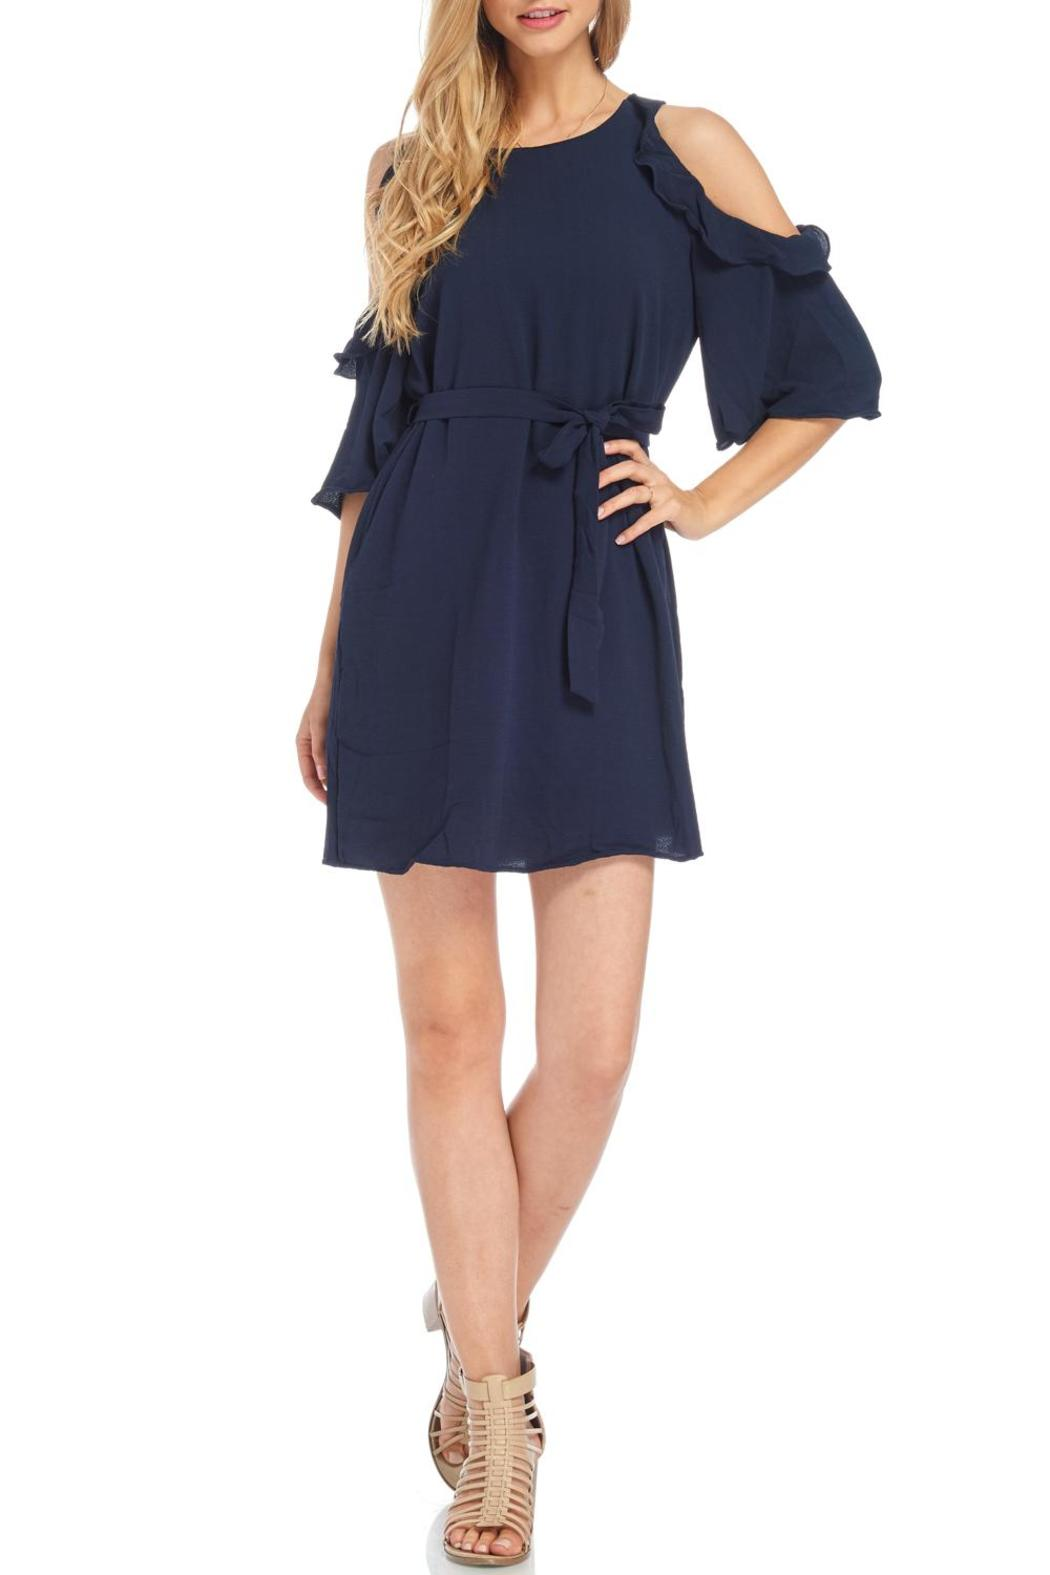 Do & Be Navy Cold Shoulder Dress - Main Image